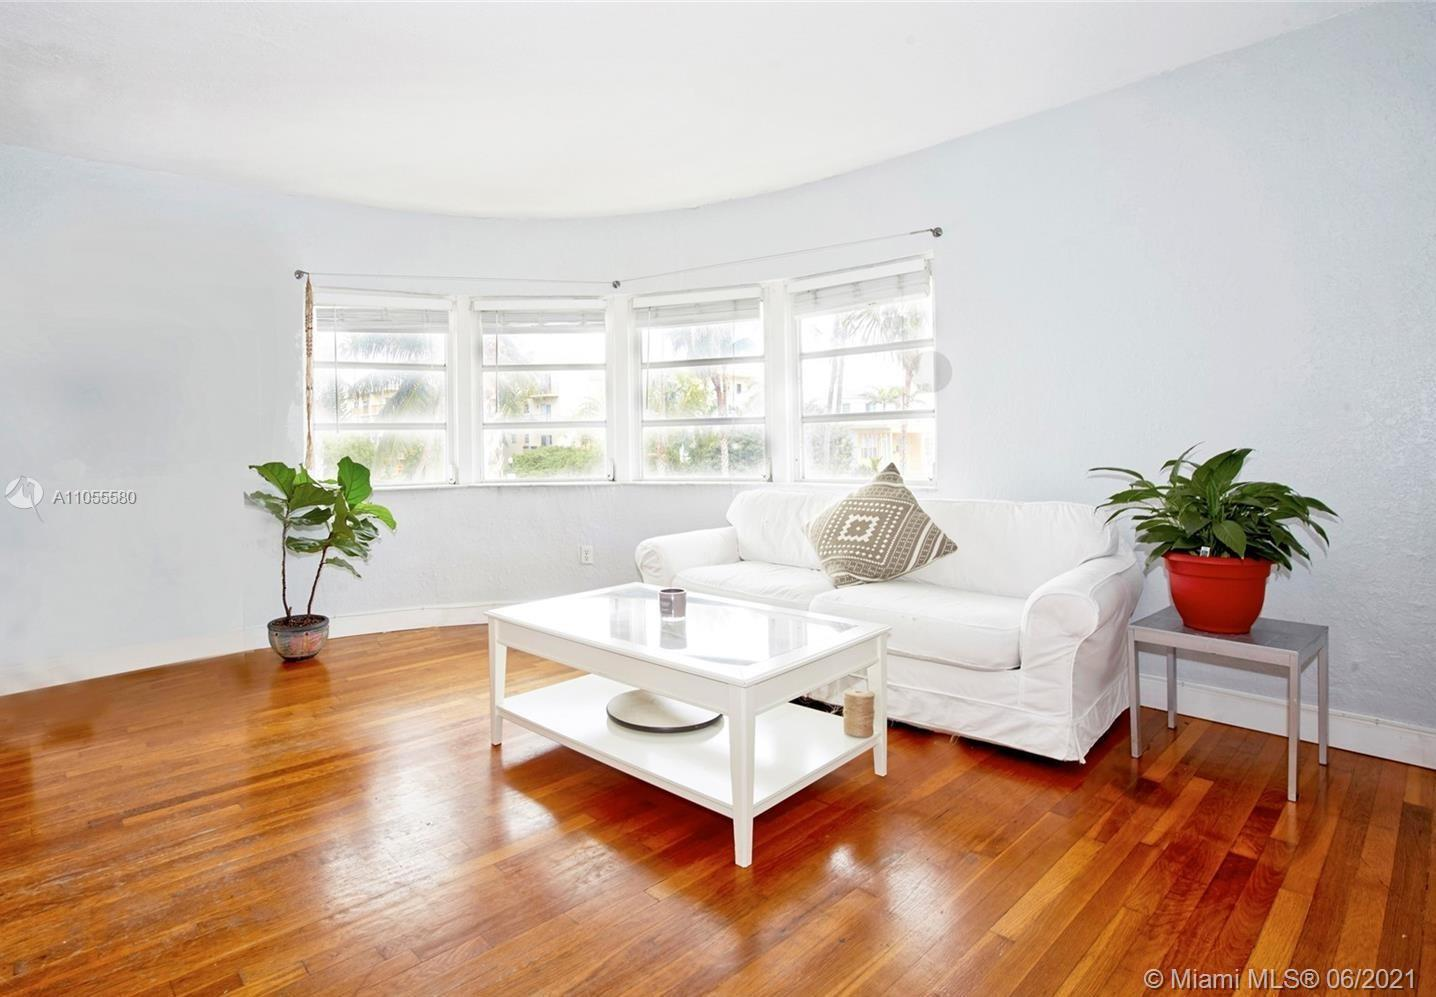 Historic Art Deco well kept building with modern updates. This spacious front corner unit has 2 larg